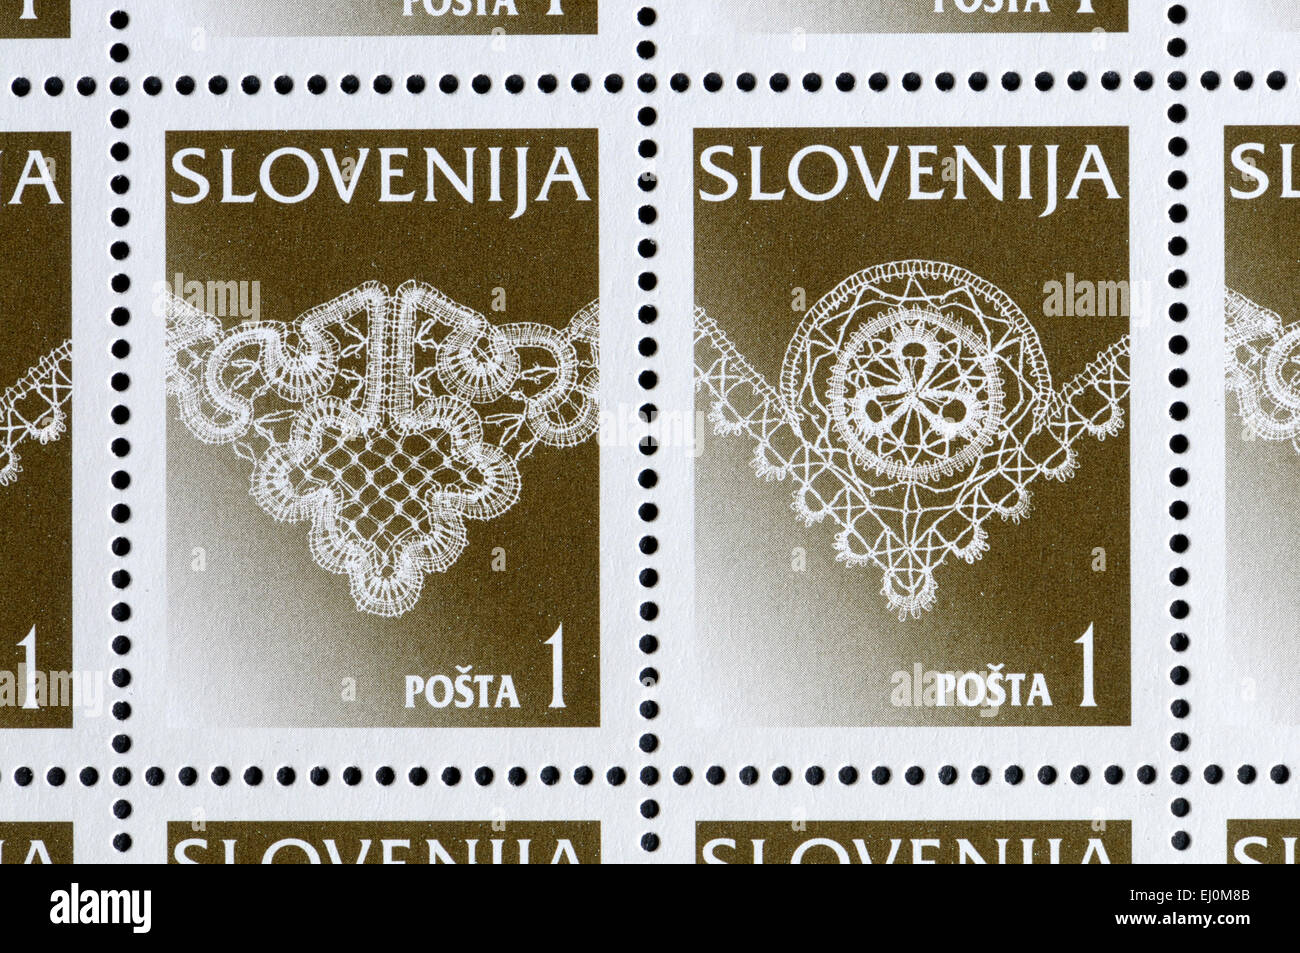 Slovenian postage stams showing Idrijan Lace - traditional craft in Idria, Slovenia. In se-tenant pairs Stock Photo